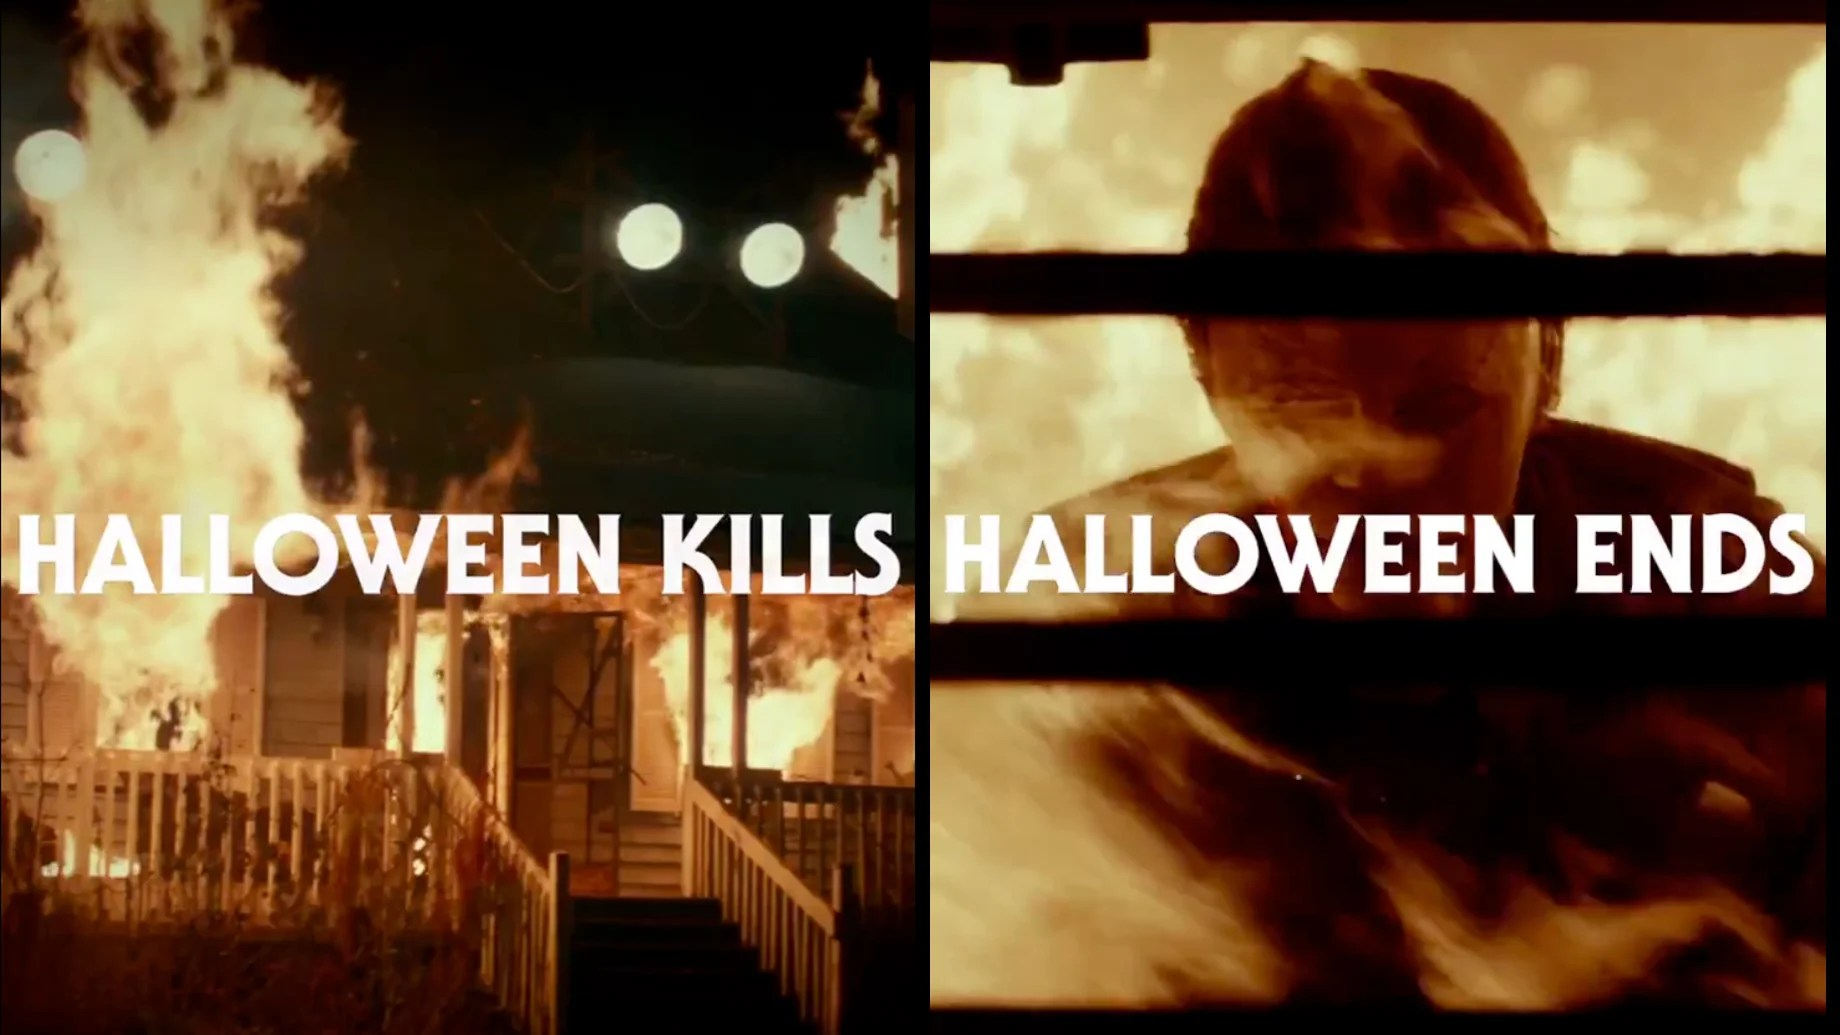 Want to make your smartphone a little spookier this halloween? Two New Halloween Movies, Halloween Kills And Halloween Ends, Coming In 2020 And 2021 | Gizmodo ...